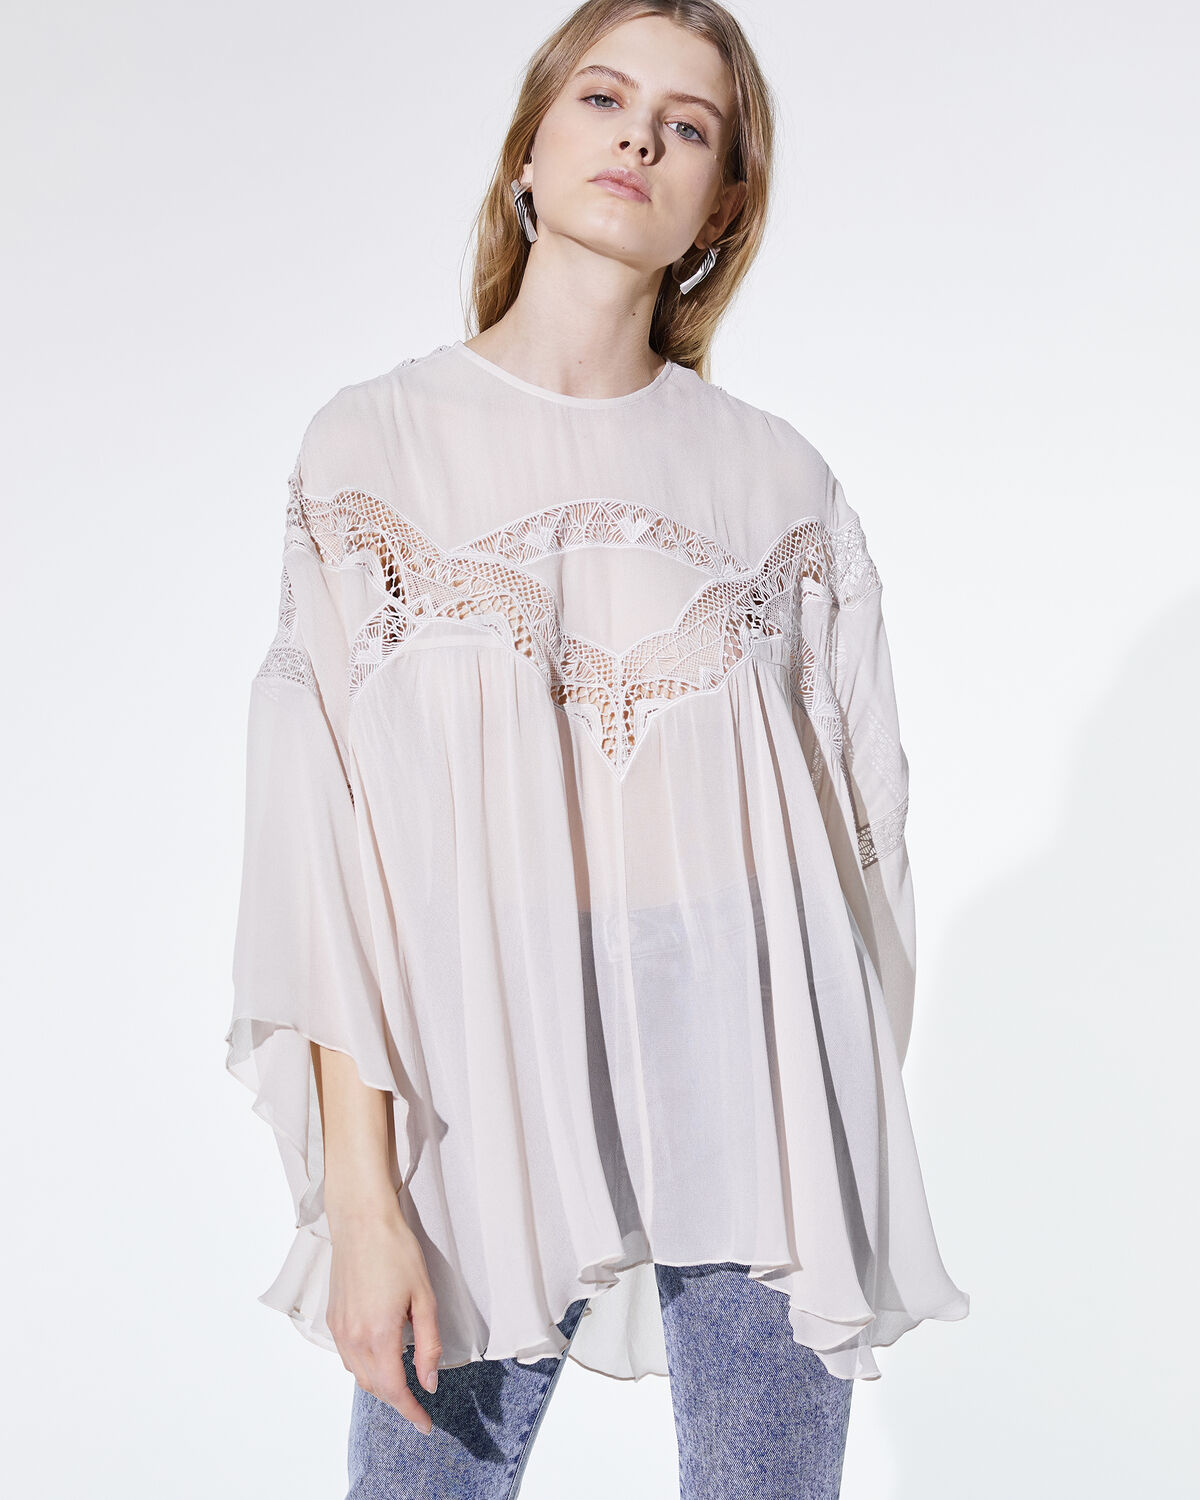 Damino Top Cream Pearl by IRO Paris